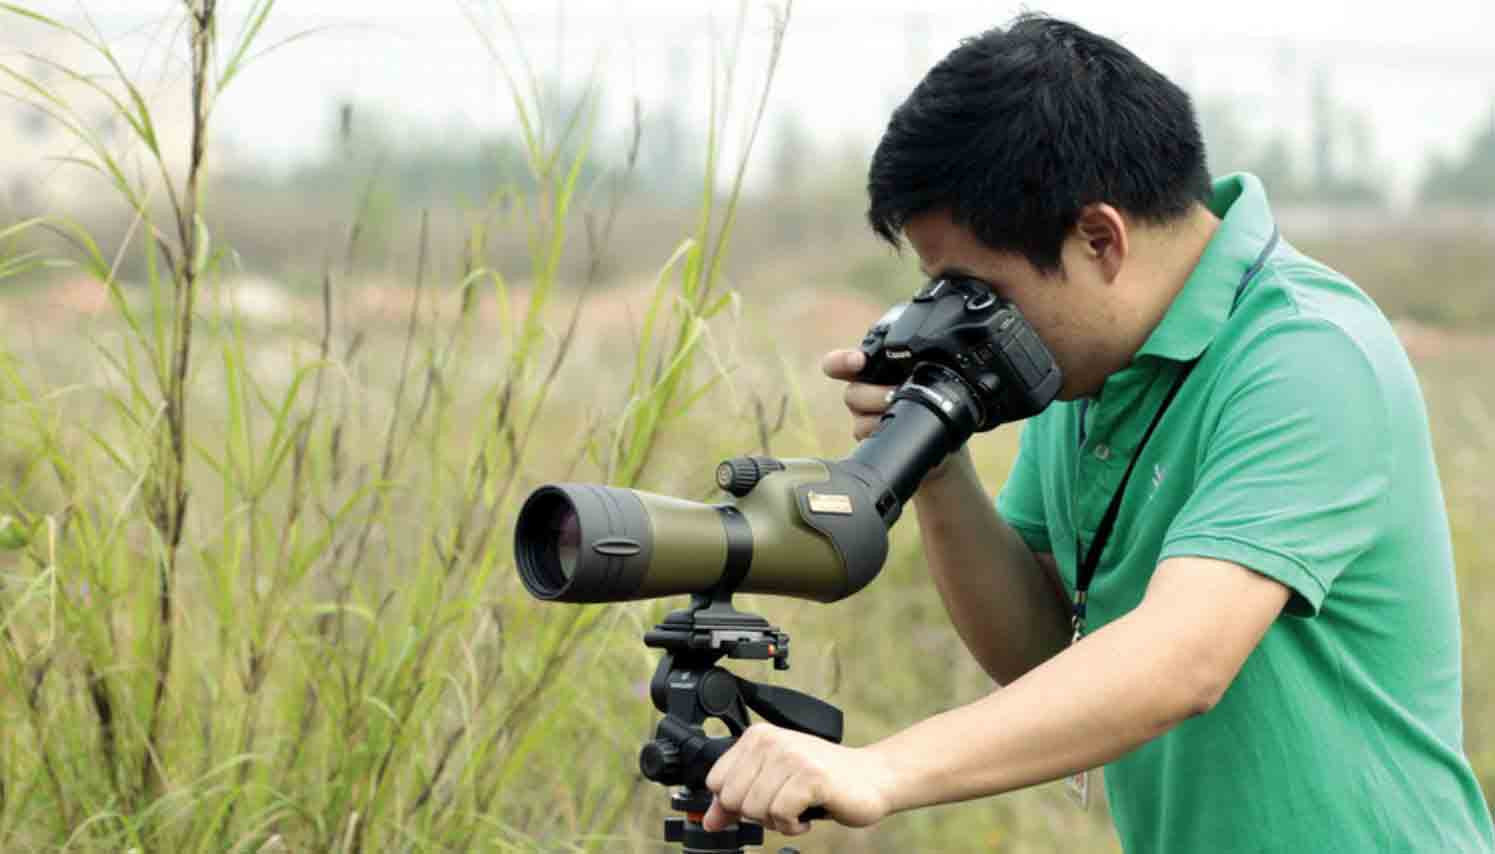 Using spotting scope